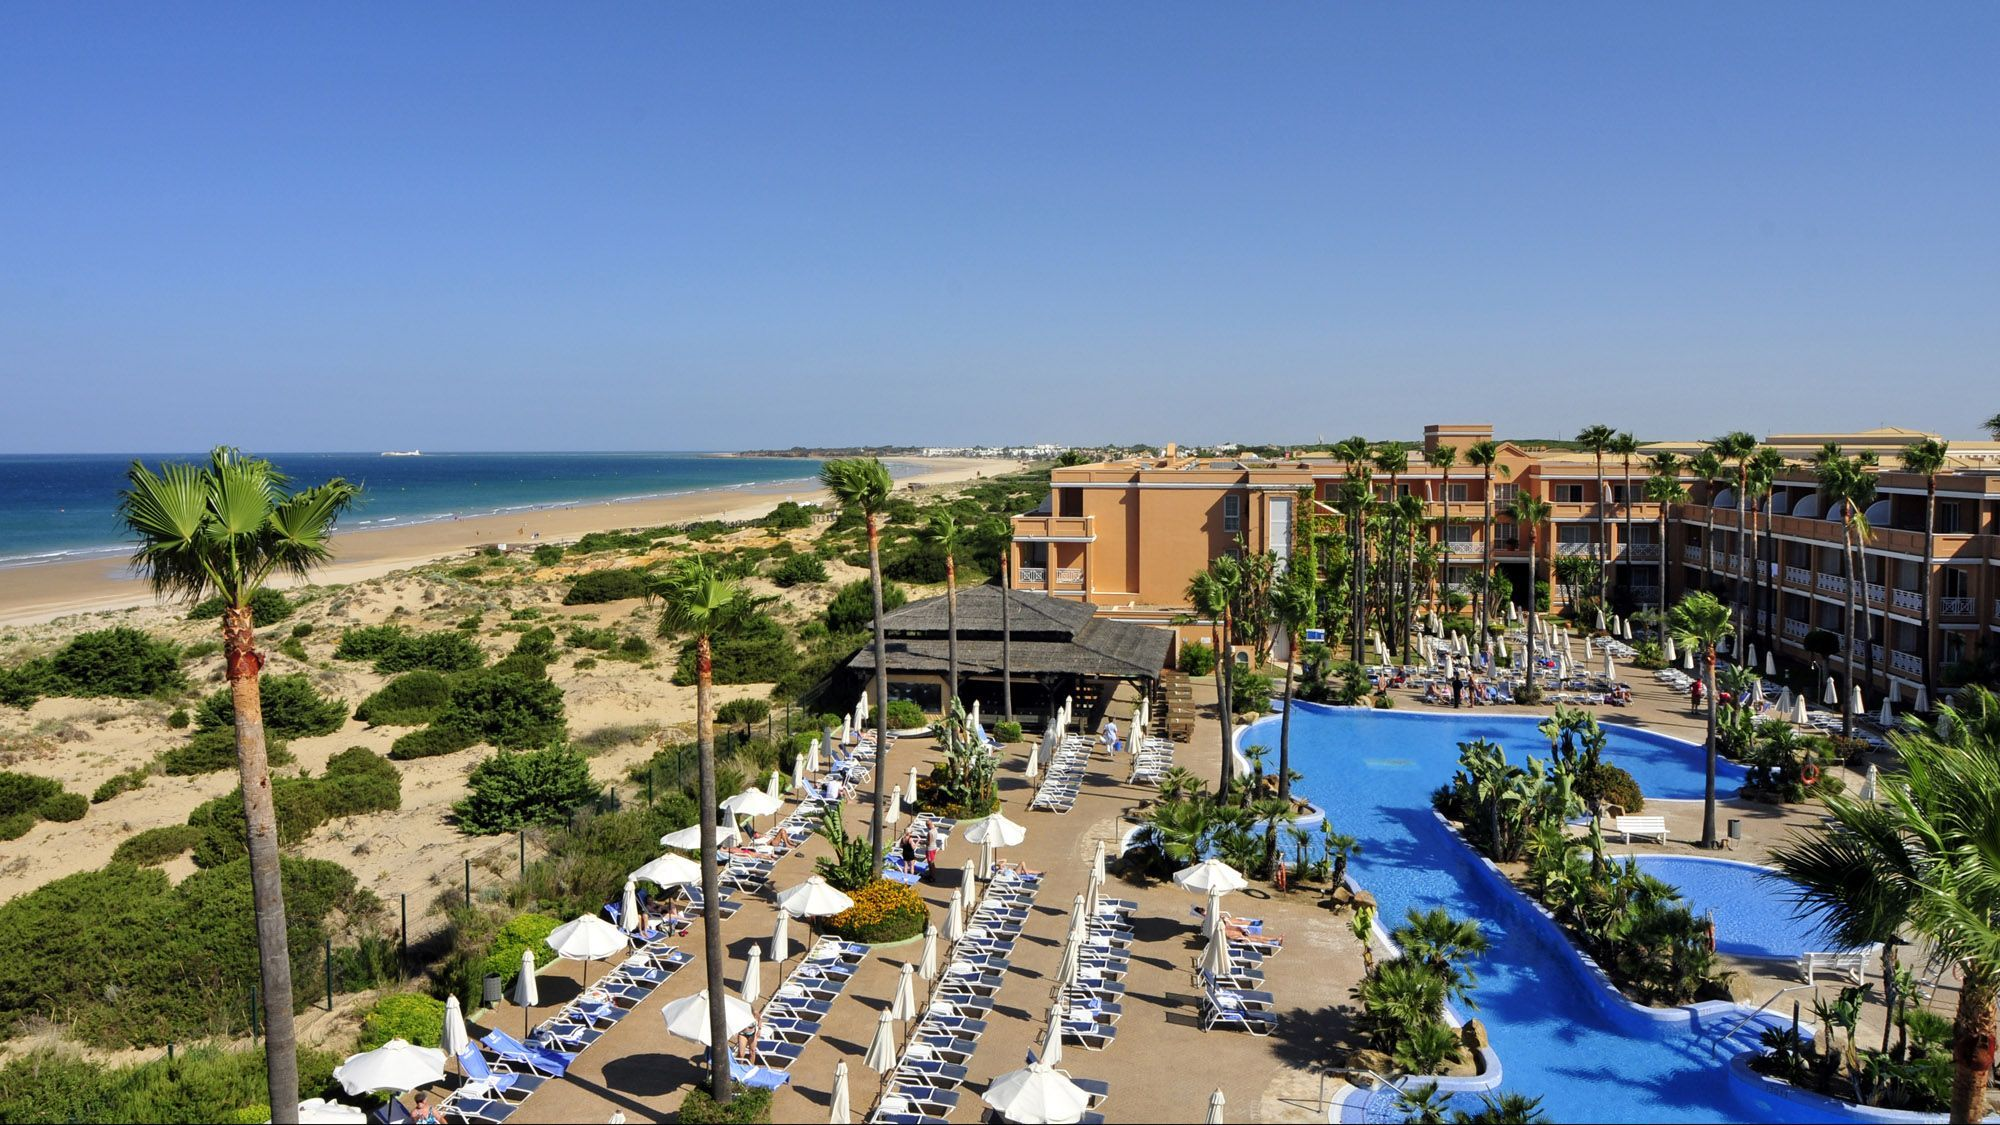 Andalusien Hotel Barrosa Palace